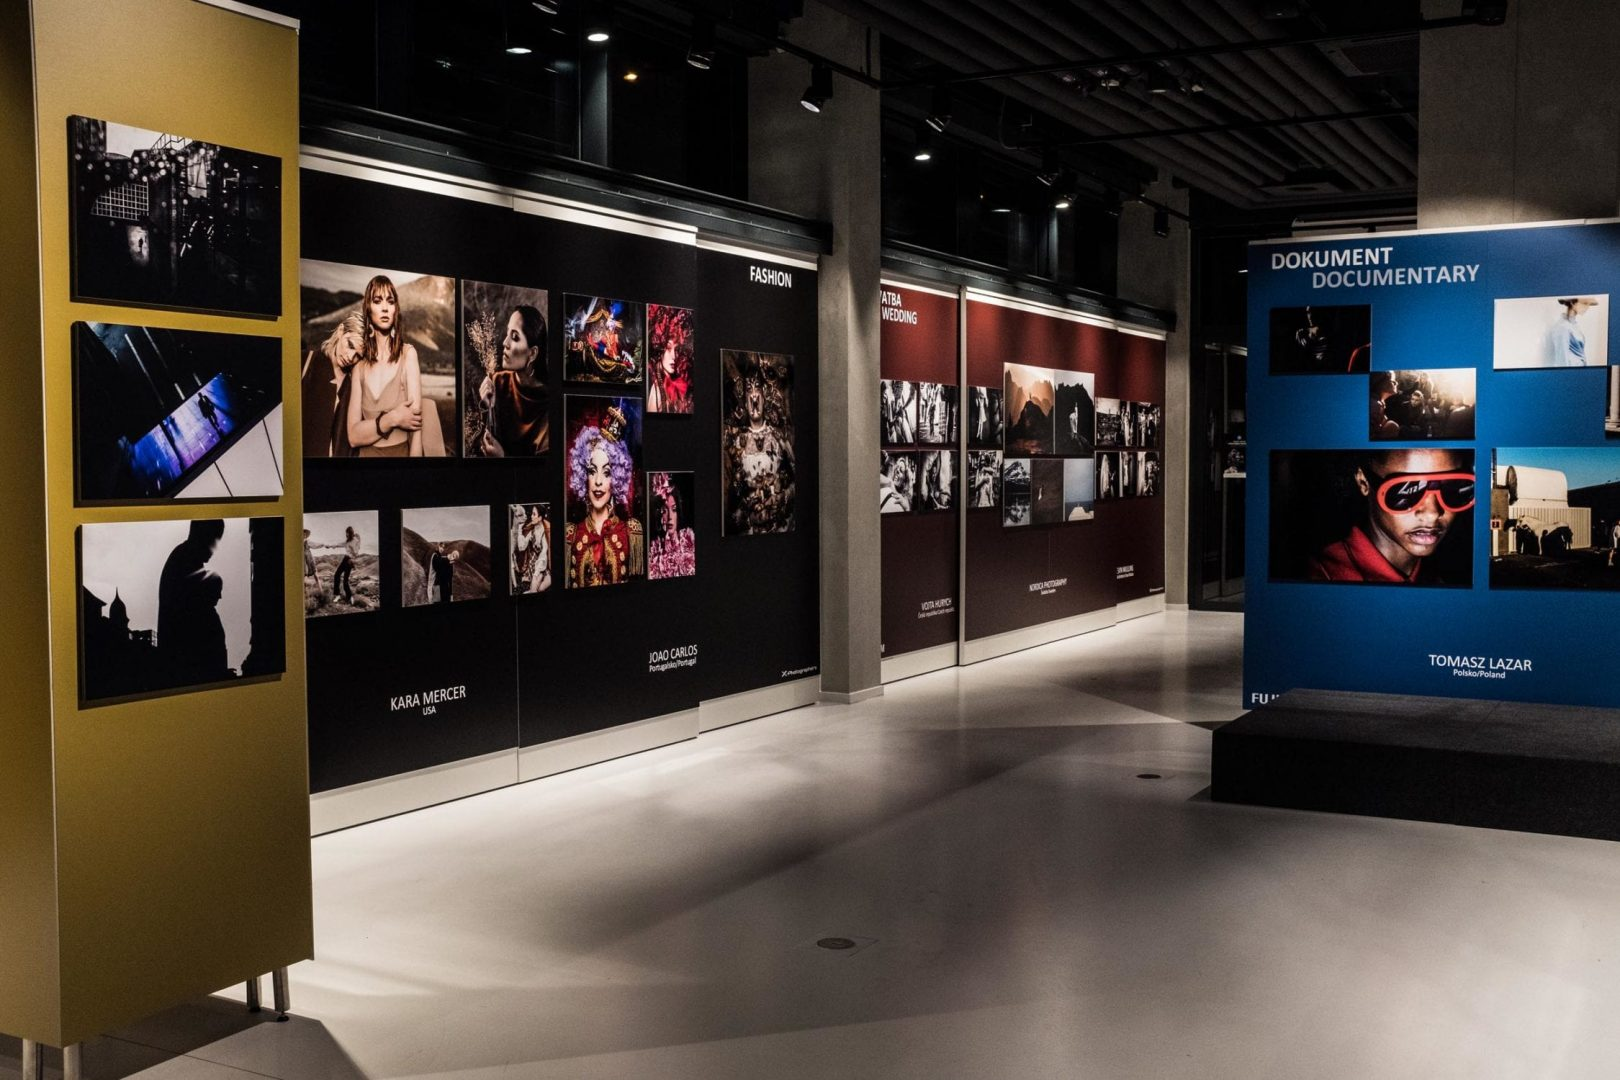 Another view of the Fujfilm World X-Photographers Exhibition at the Czech Photo Center.